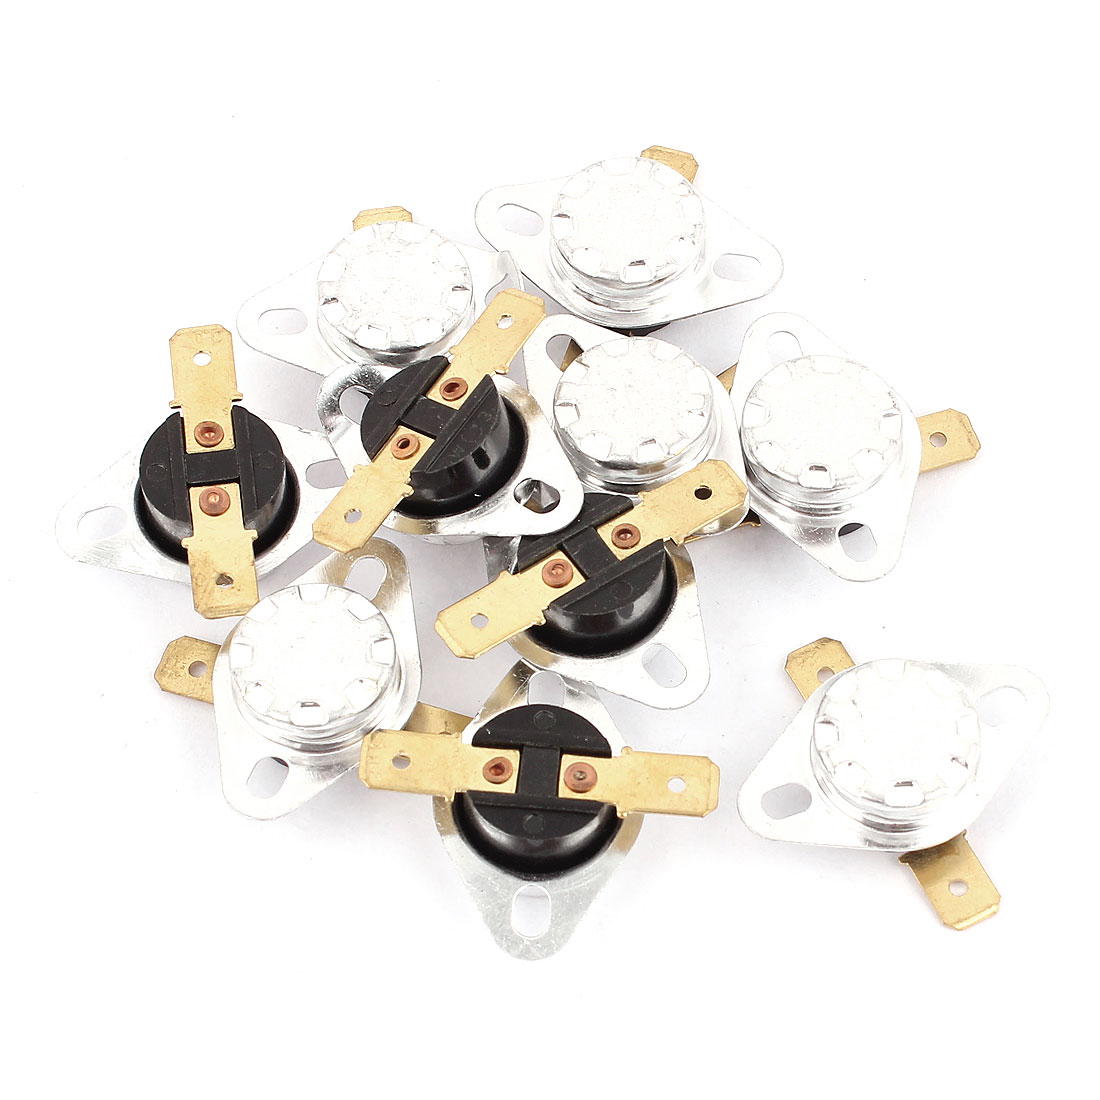 10pcs KSD301 AC 250V 10A 90C Normal Open Temperature Control Controller Switch Thermostat